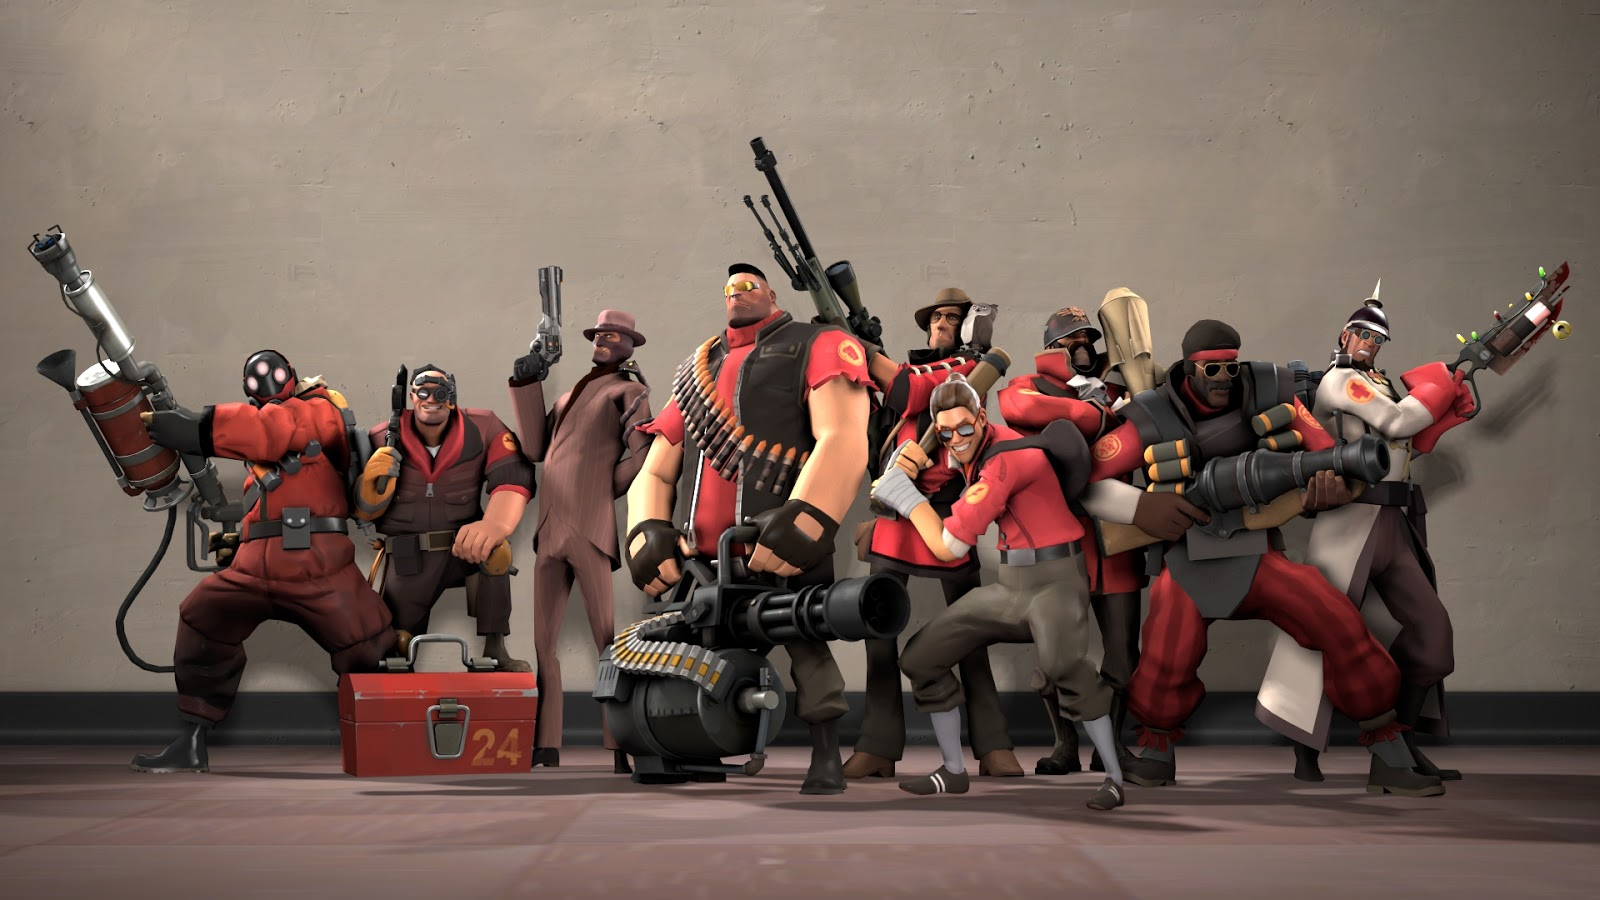 Team Fortress 2 Is A Based First Person Shooter Multiplayer Video Game Developed And Published By Valve Corporation In Players Join